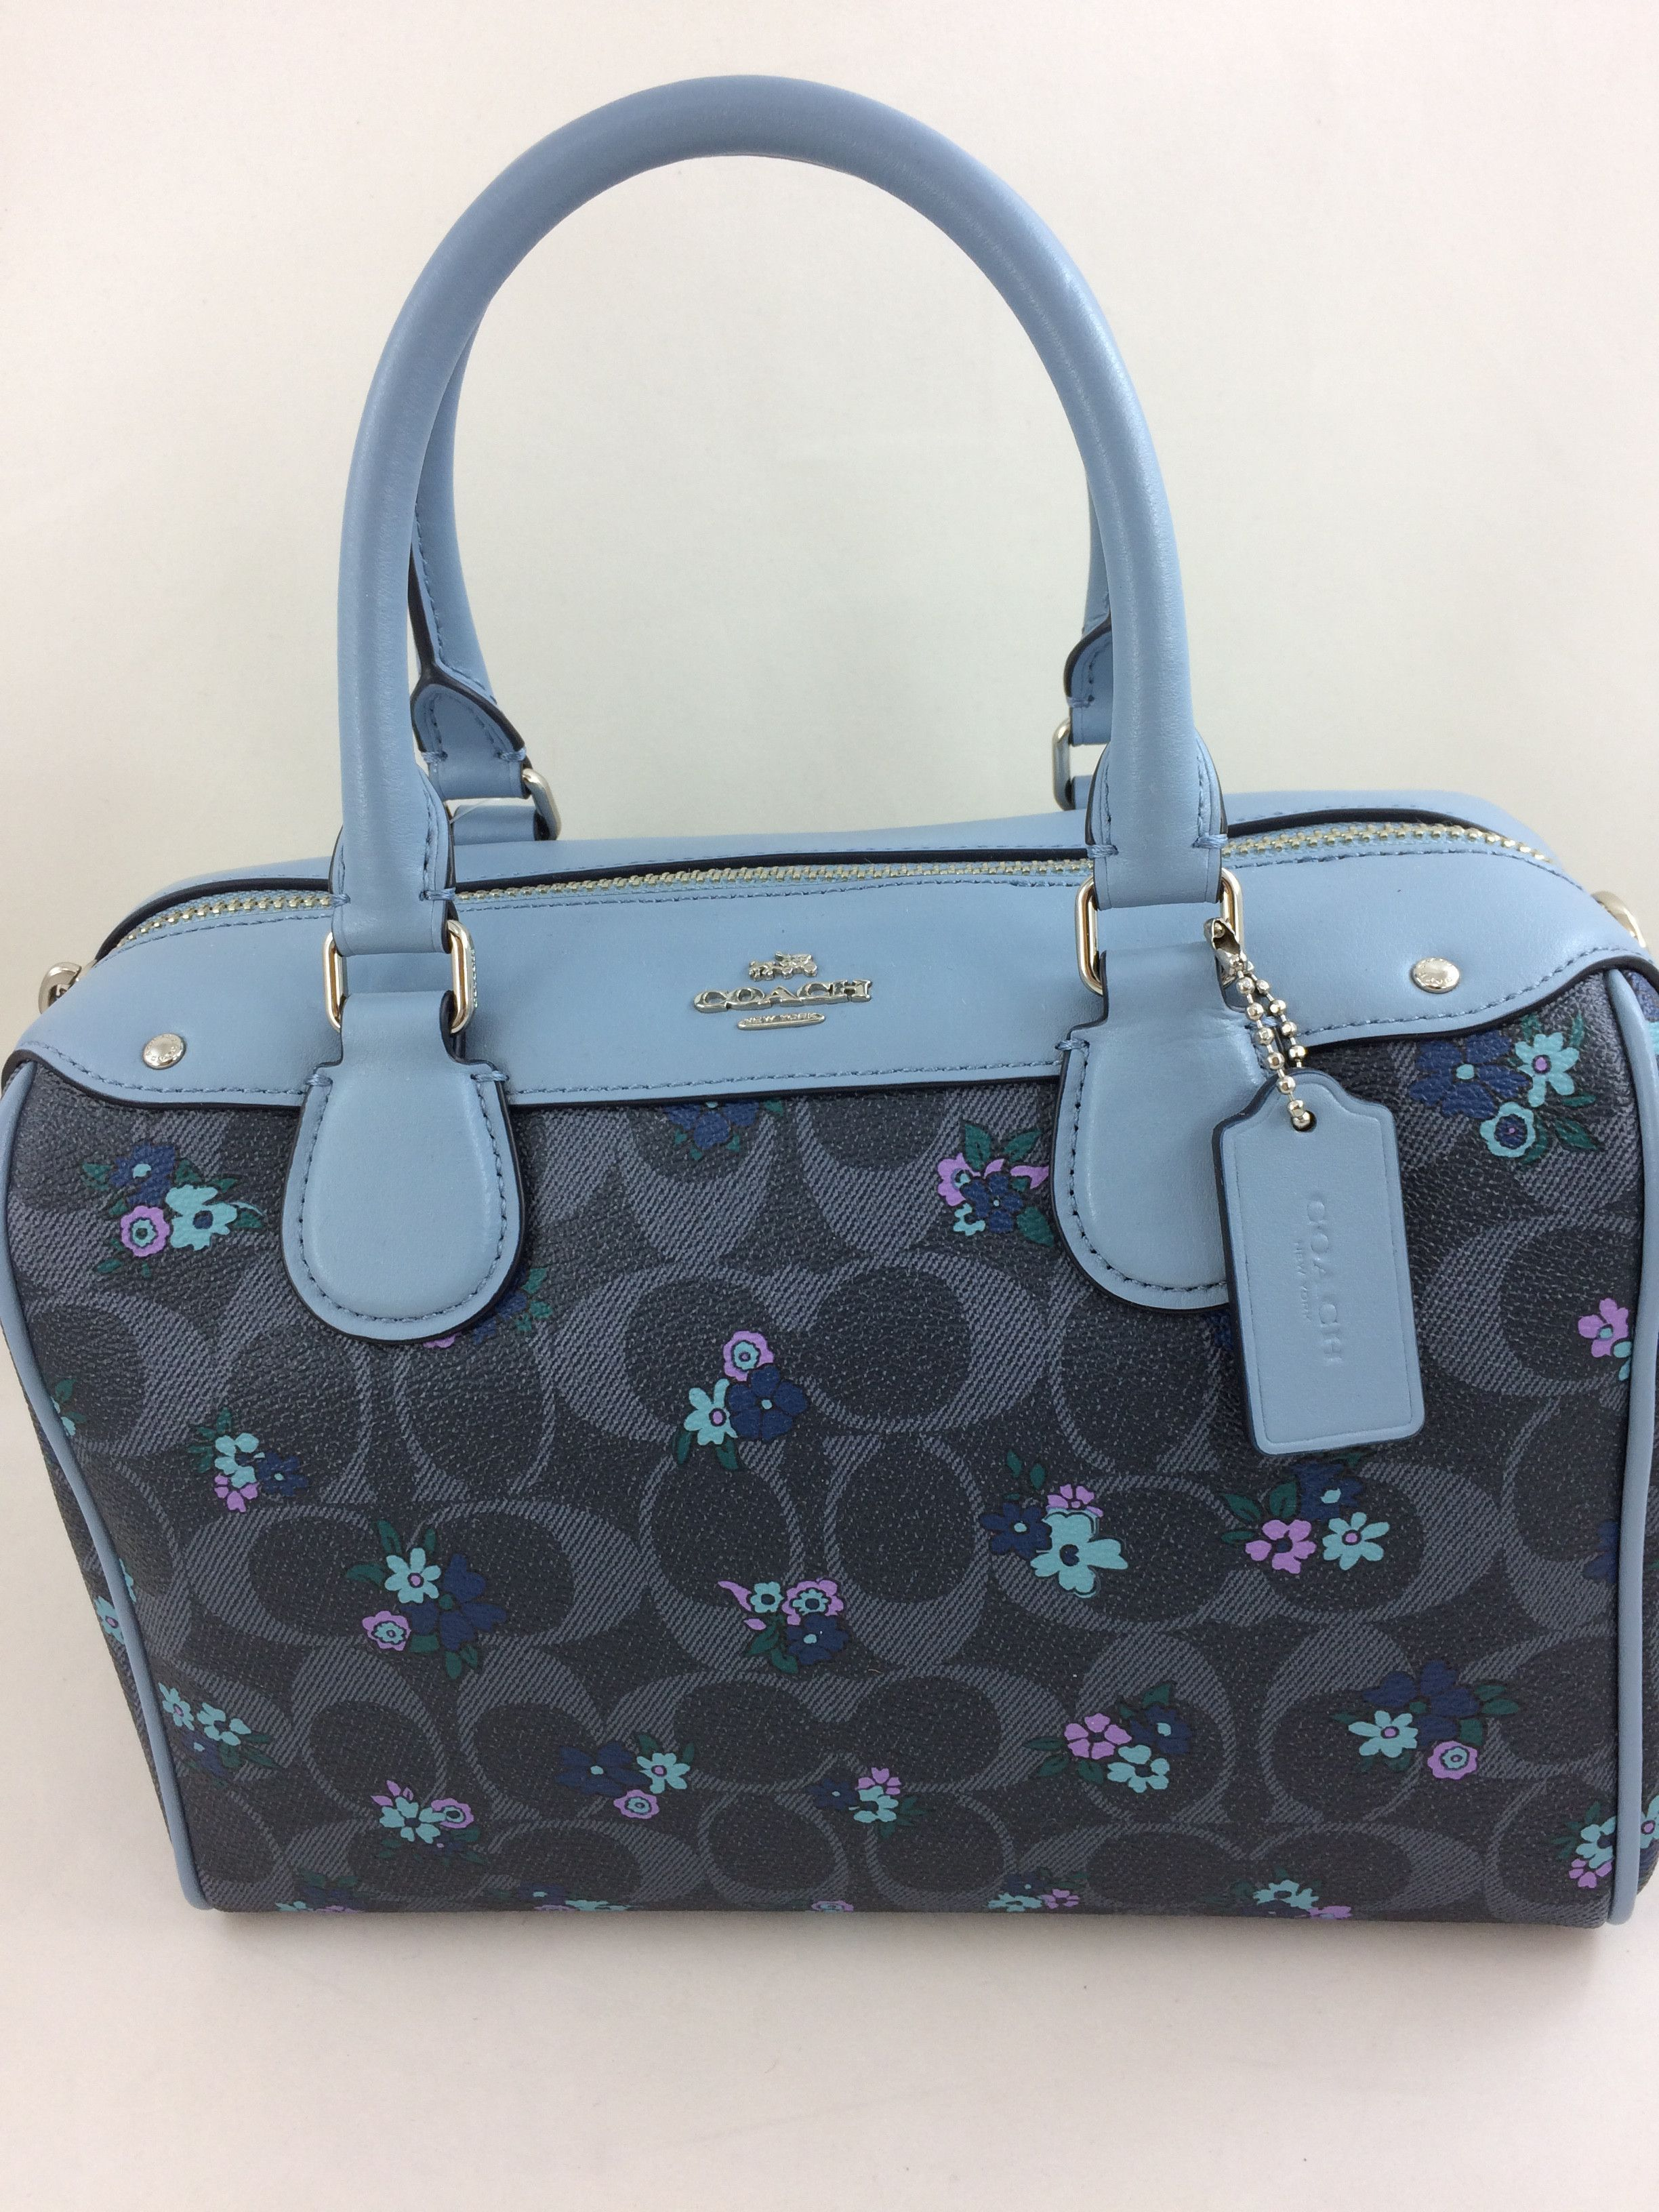 b49239c0f8 New Authentic Coach F59461 Mini Bennett Satchel Handbag  Shoulder Bag in  Ranch Floral Print Blue Multi  WomensShoulderbags